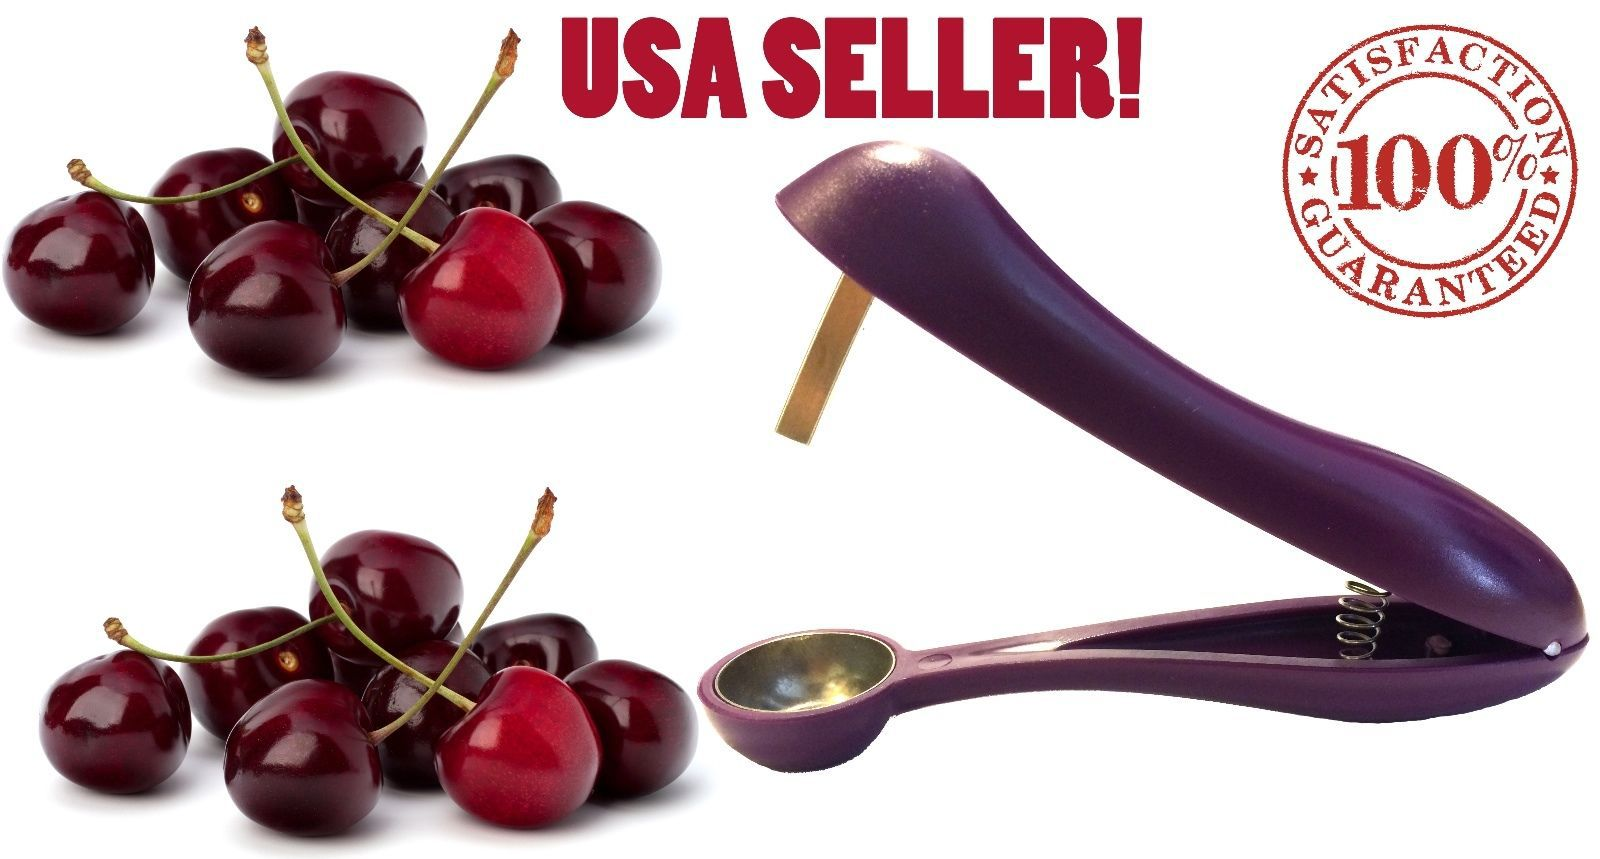 Cherry Pitter Olive Stoner USA Sell- Corer, Hand Held Seed Remover Cherries Tool